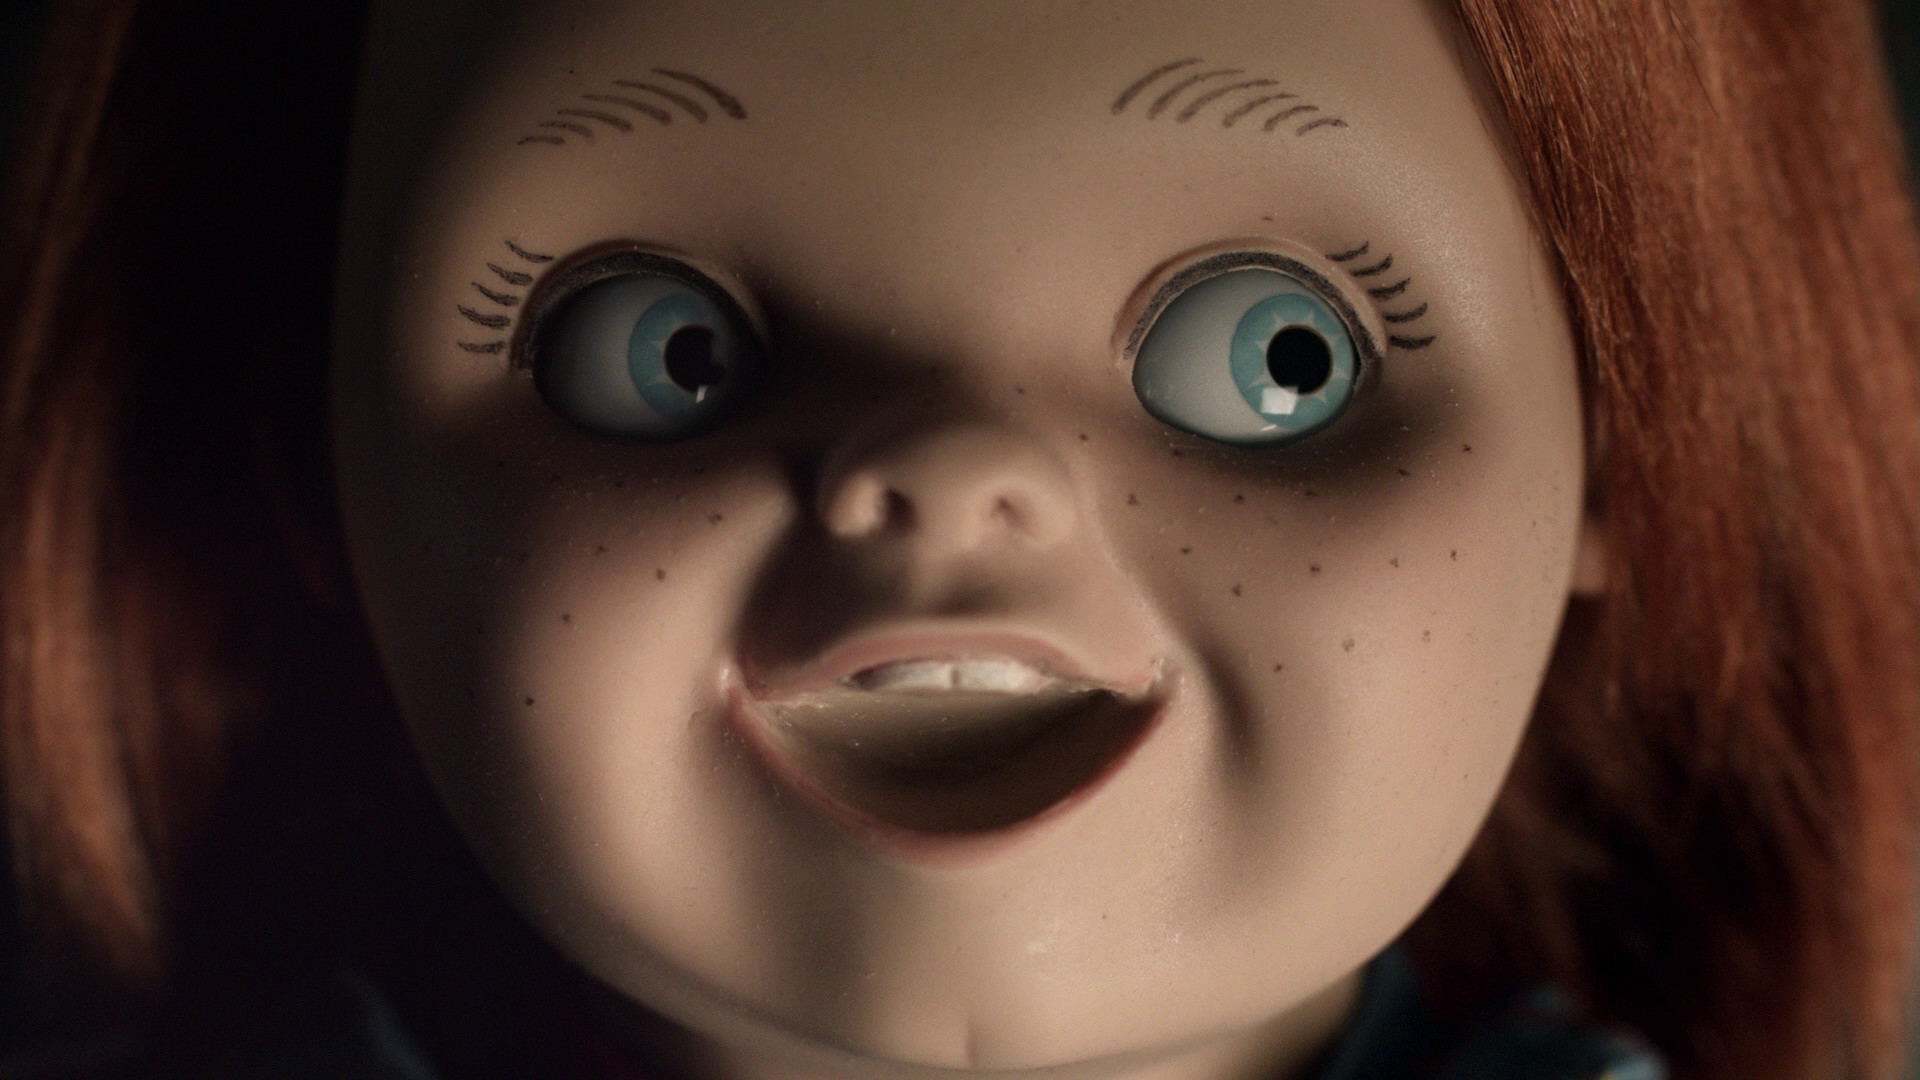 Chucky wallpaper 1920x1080 chucky doll full hd wallpaperg voltagebd Choice Image